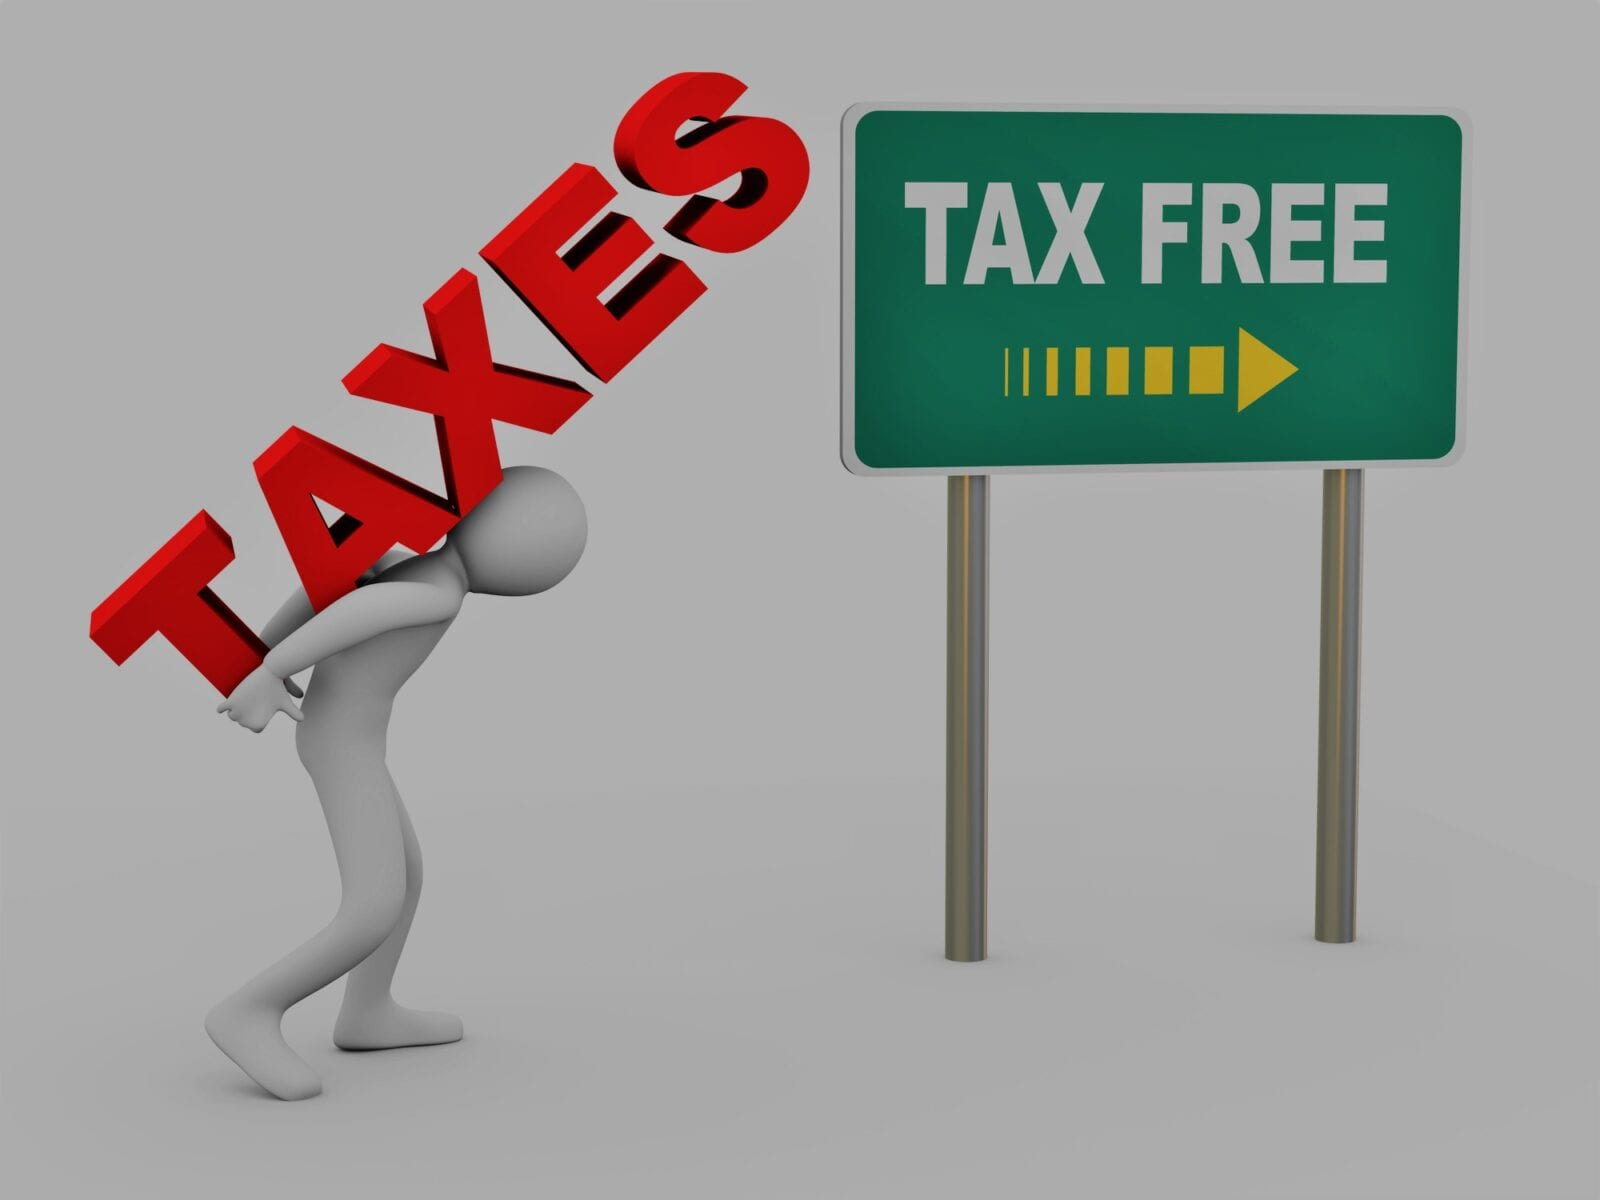 How can gold protect you from Capital gains tax increases?